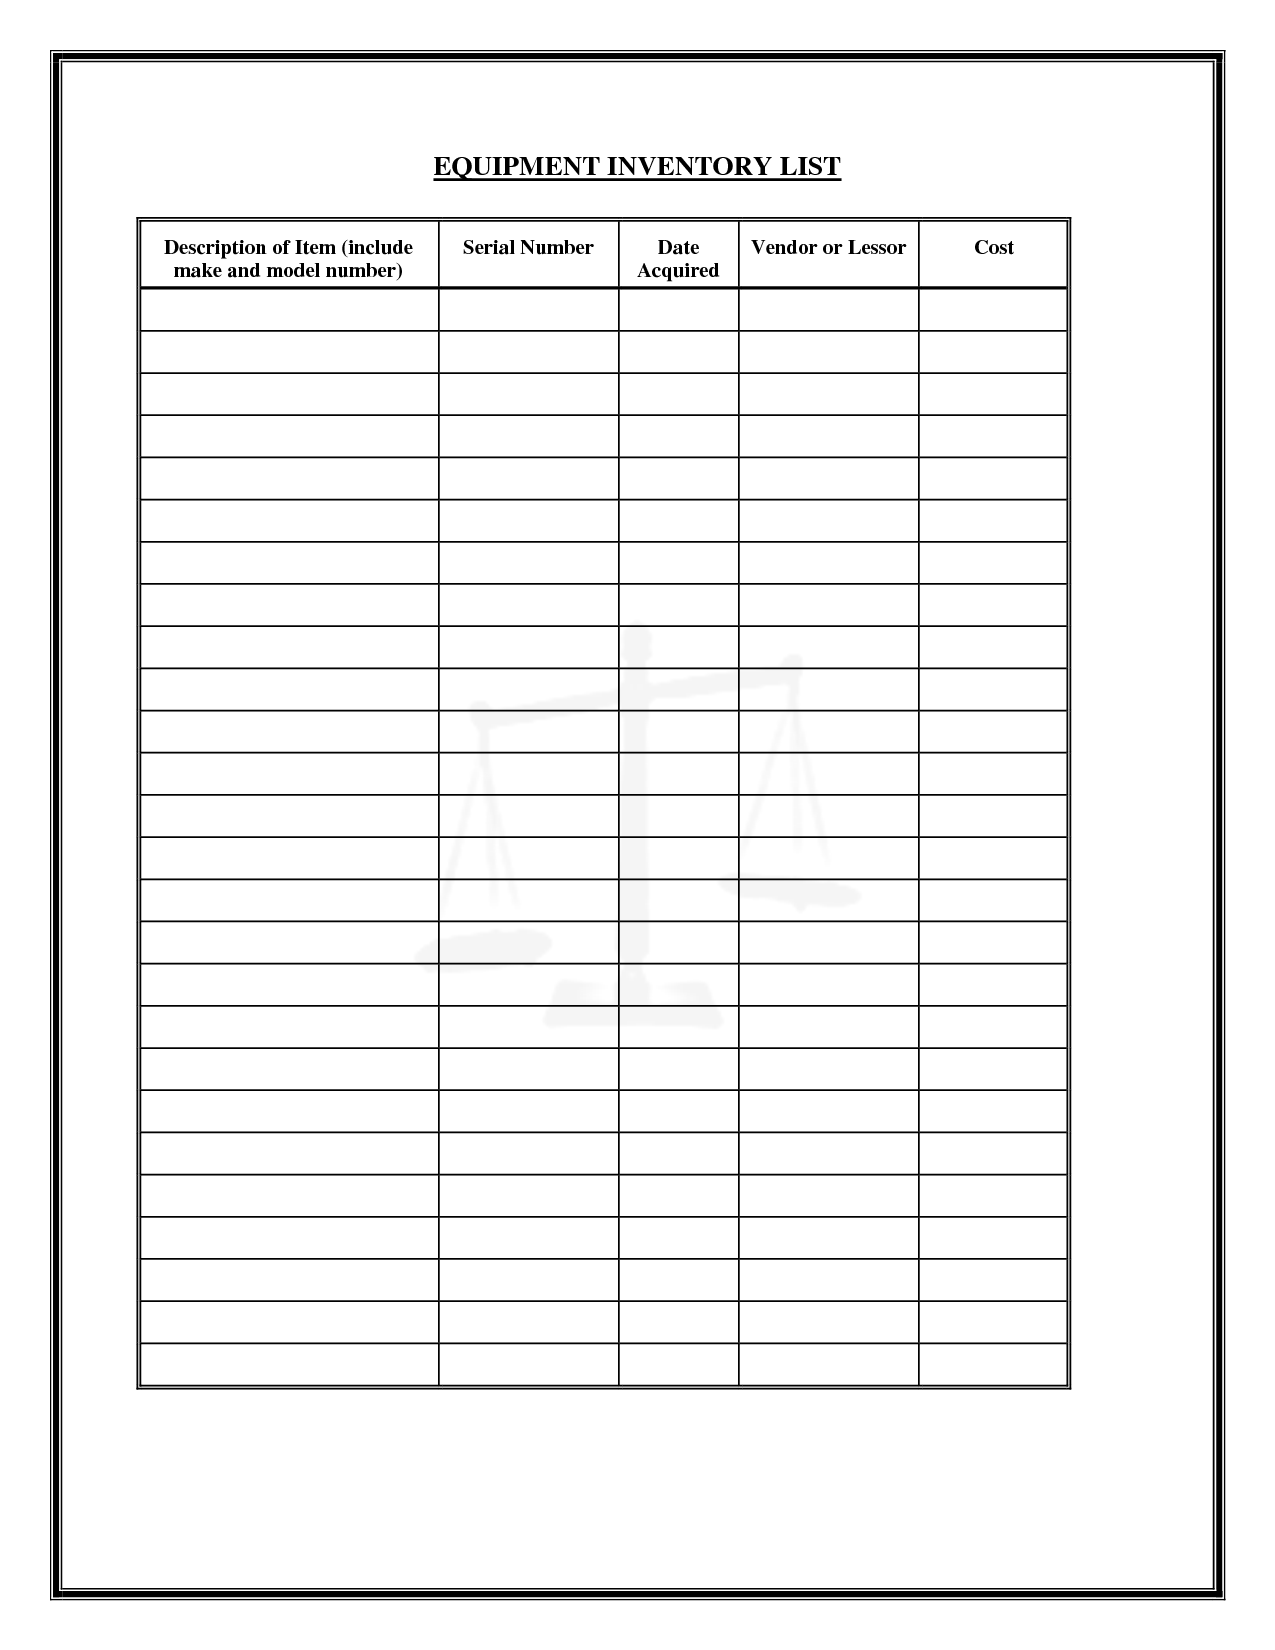 Free Inventory Forms Downloads | Equipment Inventory List ...